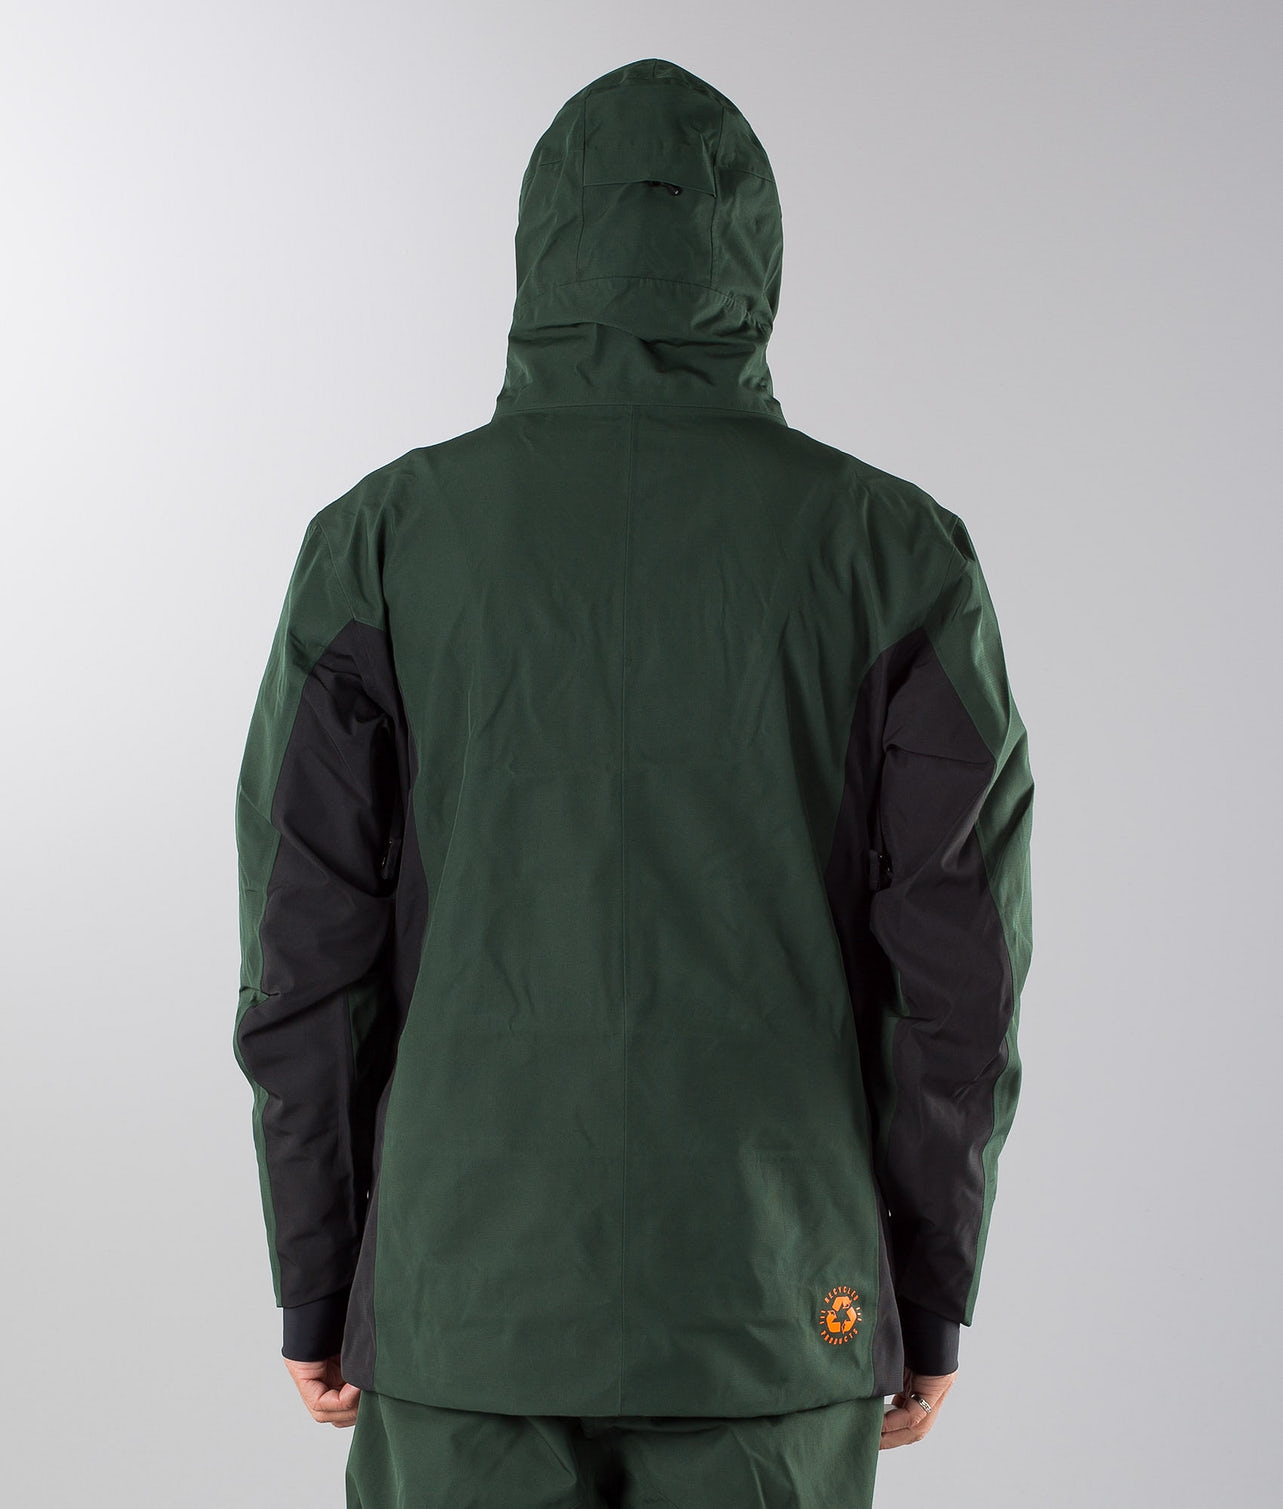 Buy Track Ski Jacket from Picture at Ridestore.com - Always free shipping, free returns and 30 days money back guarantee